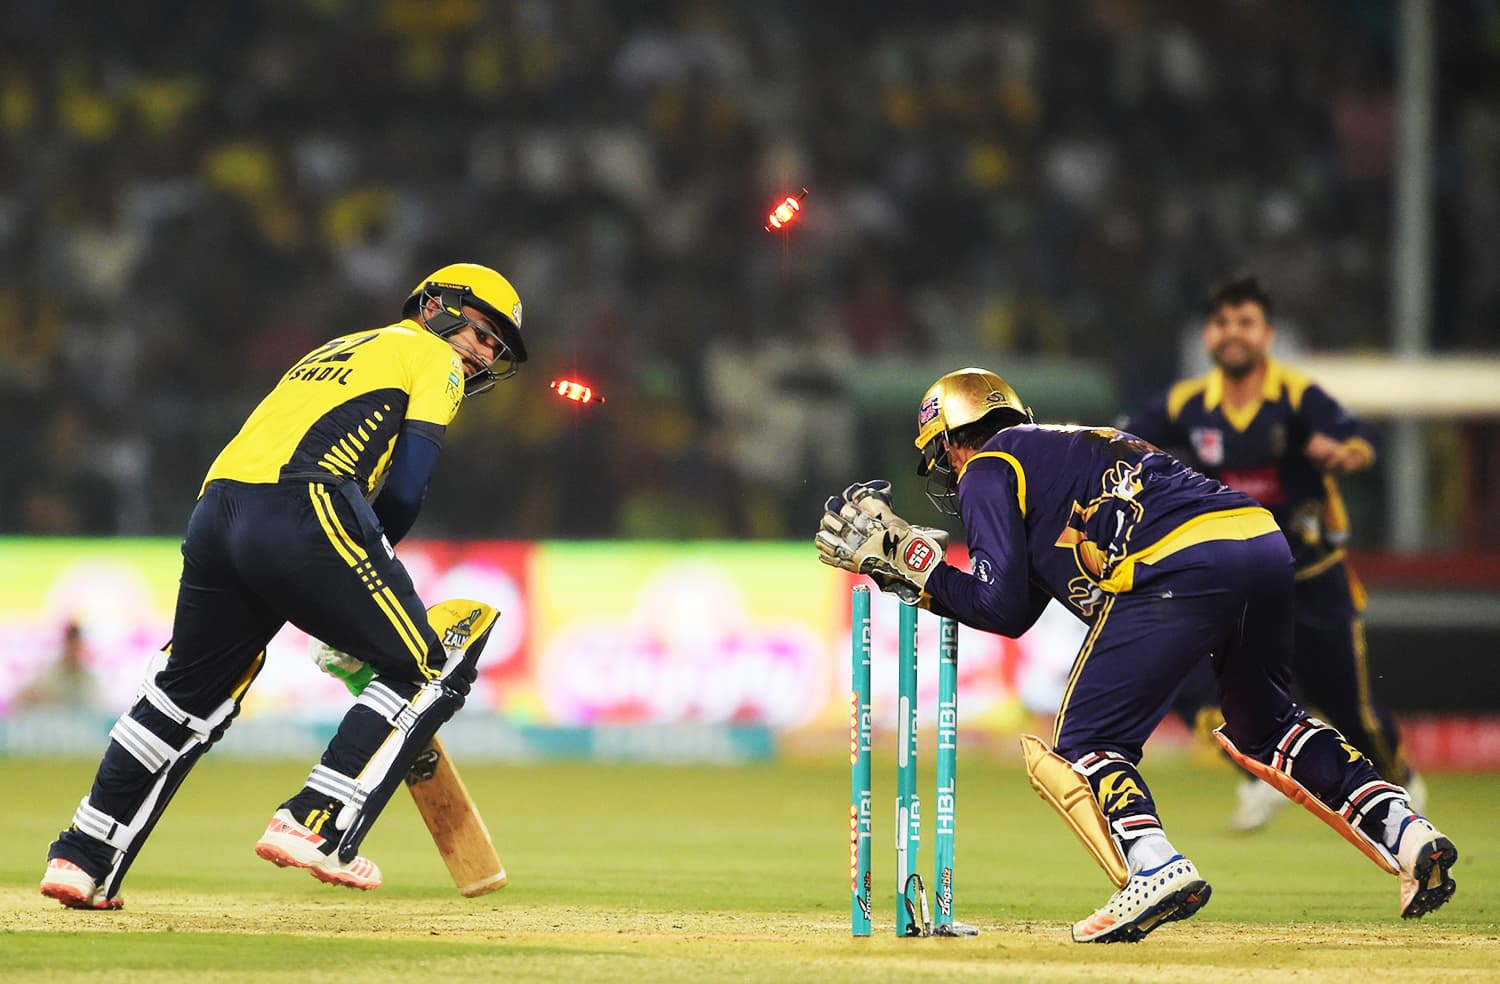 Sarfraz Ahmed (R) captain and wicketkeeper of Quetta Gladiators stumps out Peshawar Zalmi batsman Khushdil Shah (L). ─ AFP